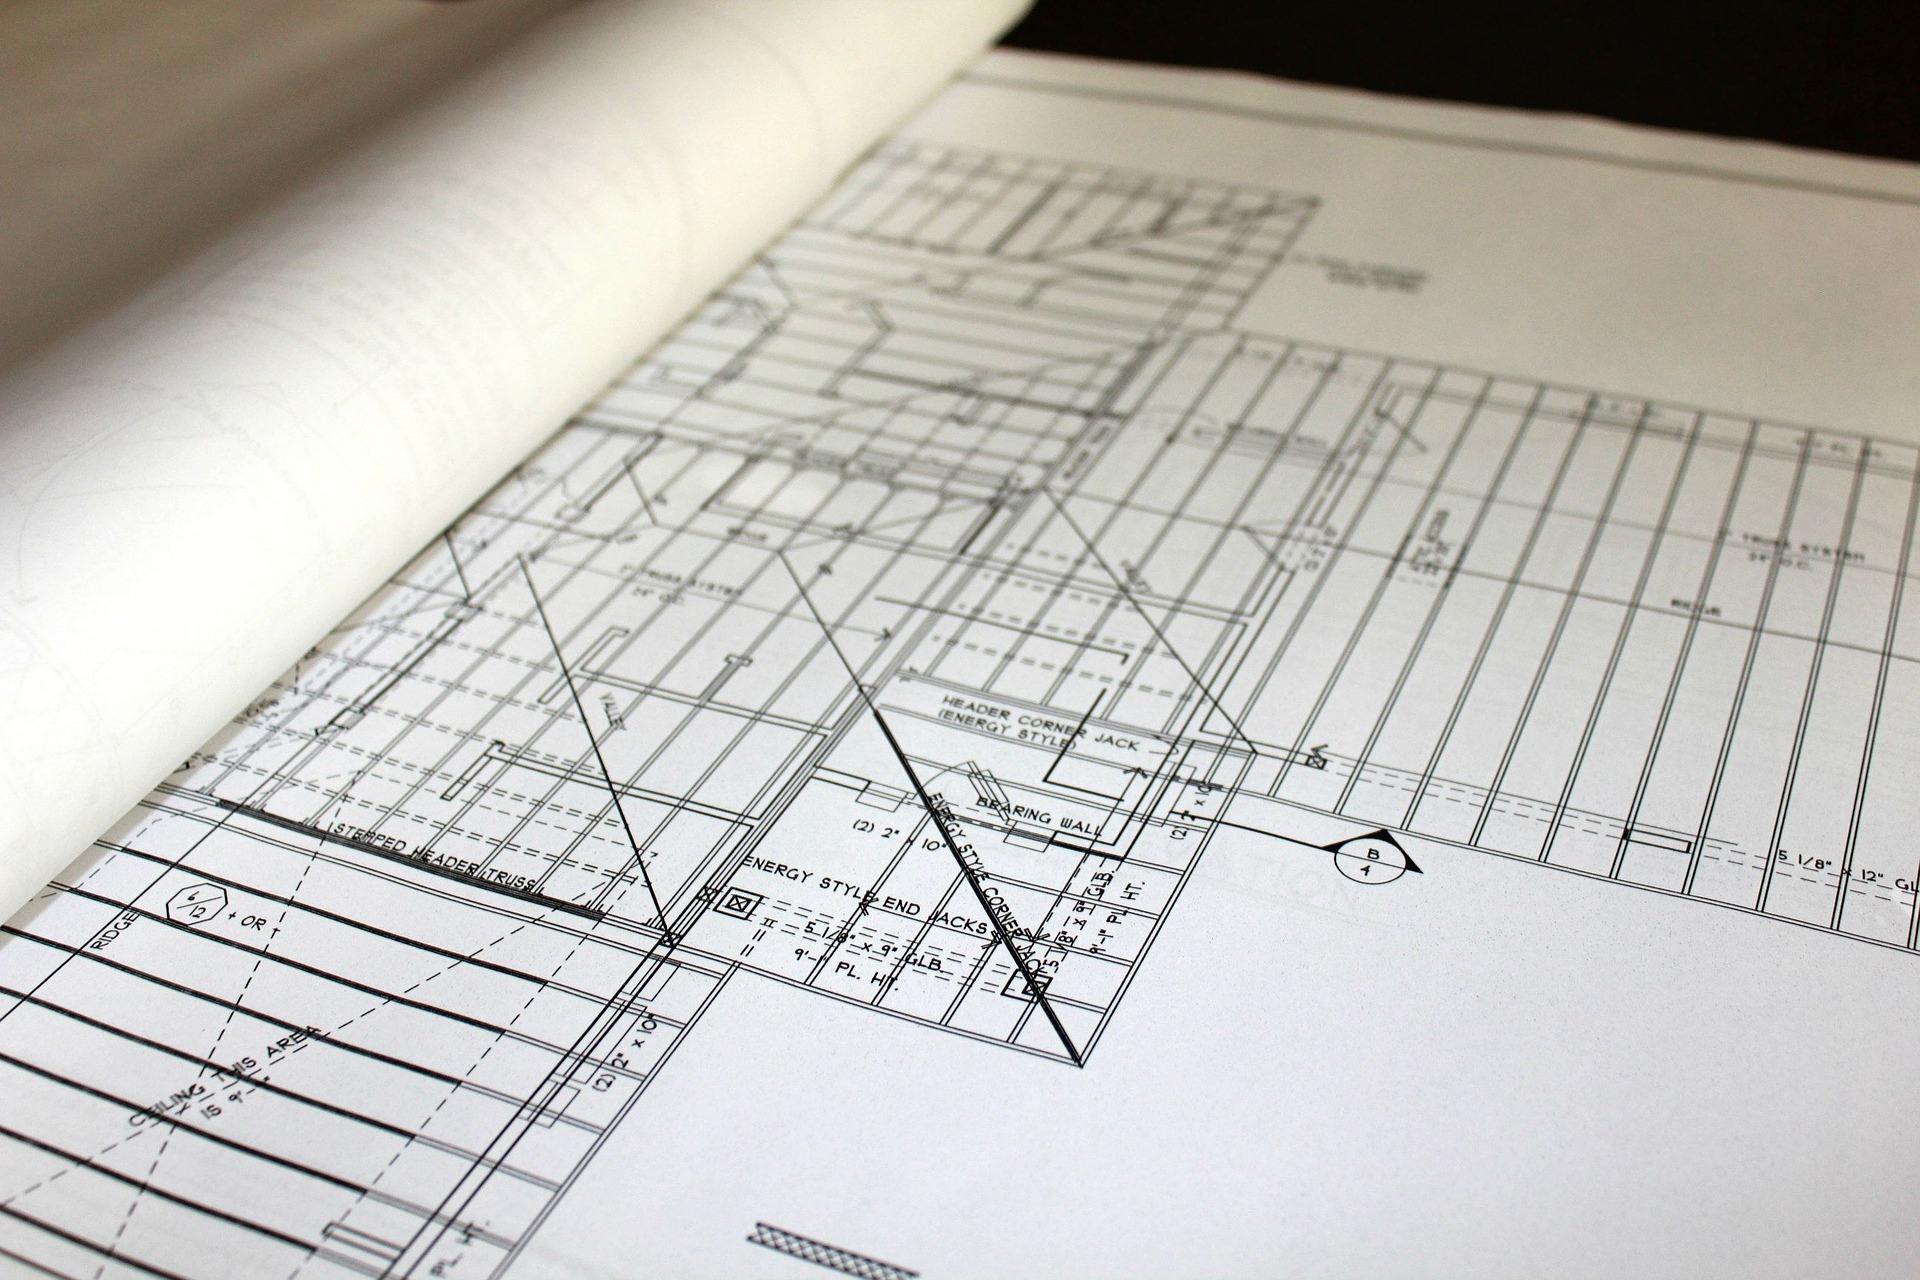 Design Flaws and Architect Professional Liability Insurance